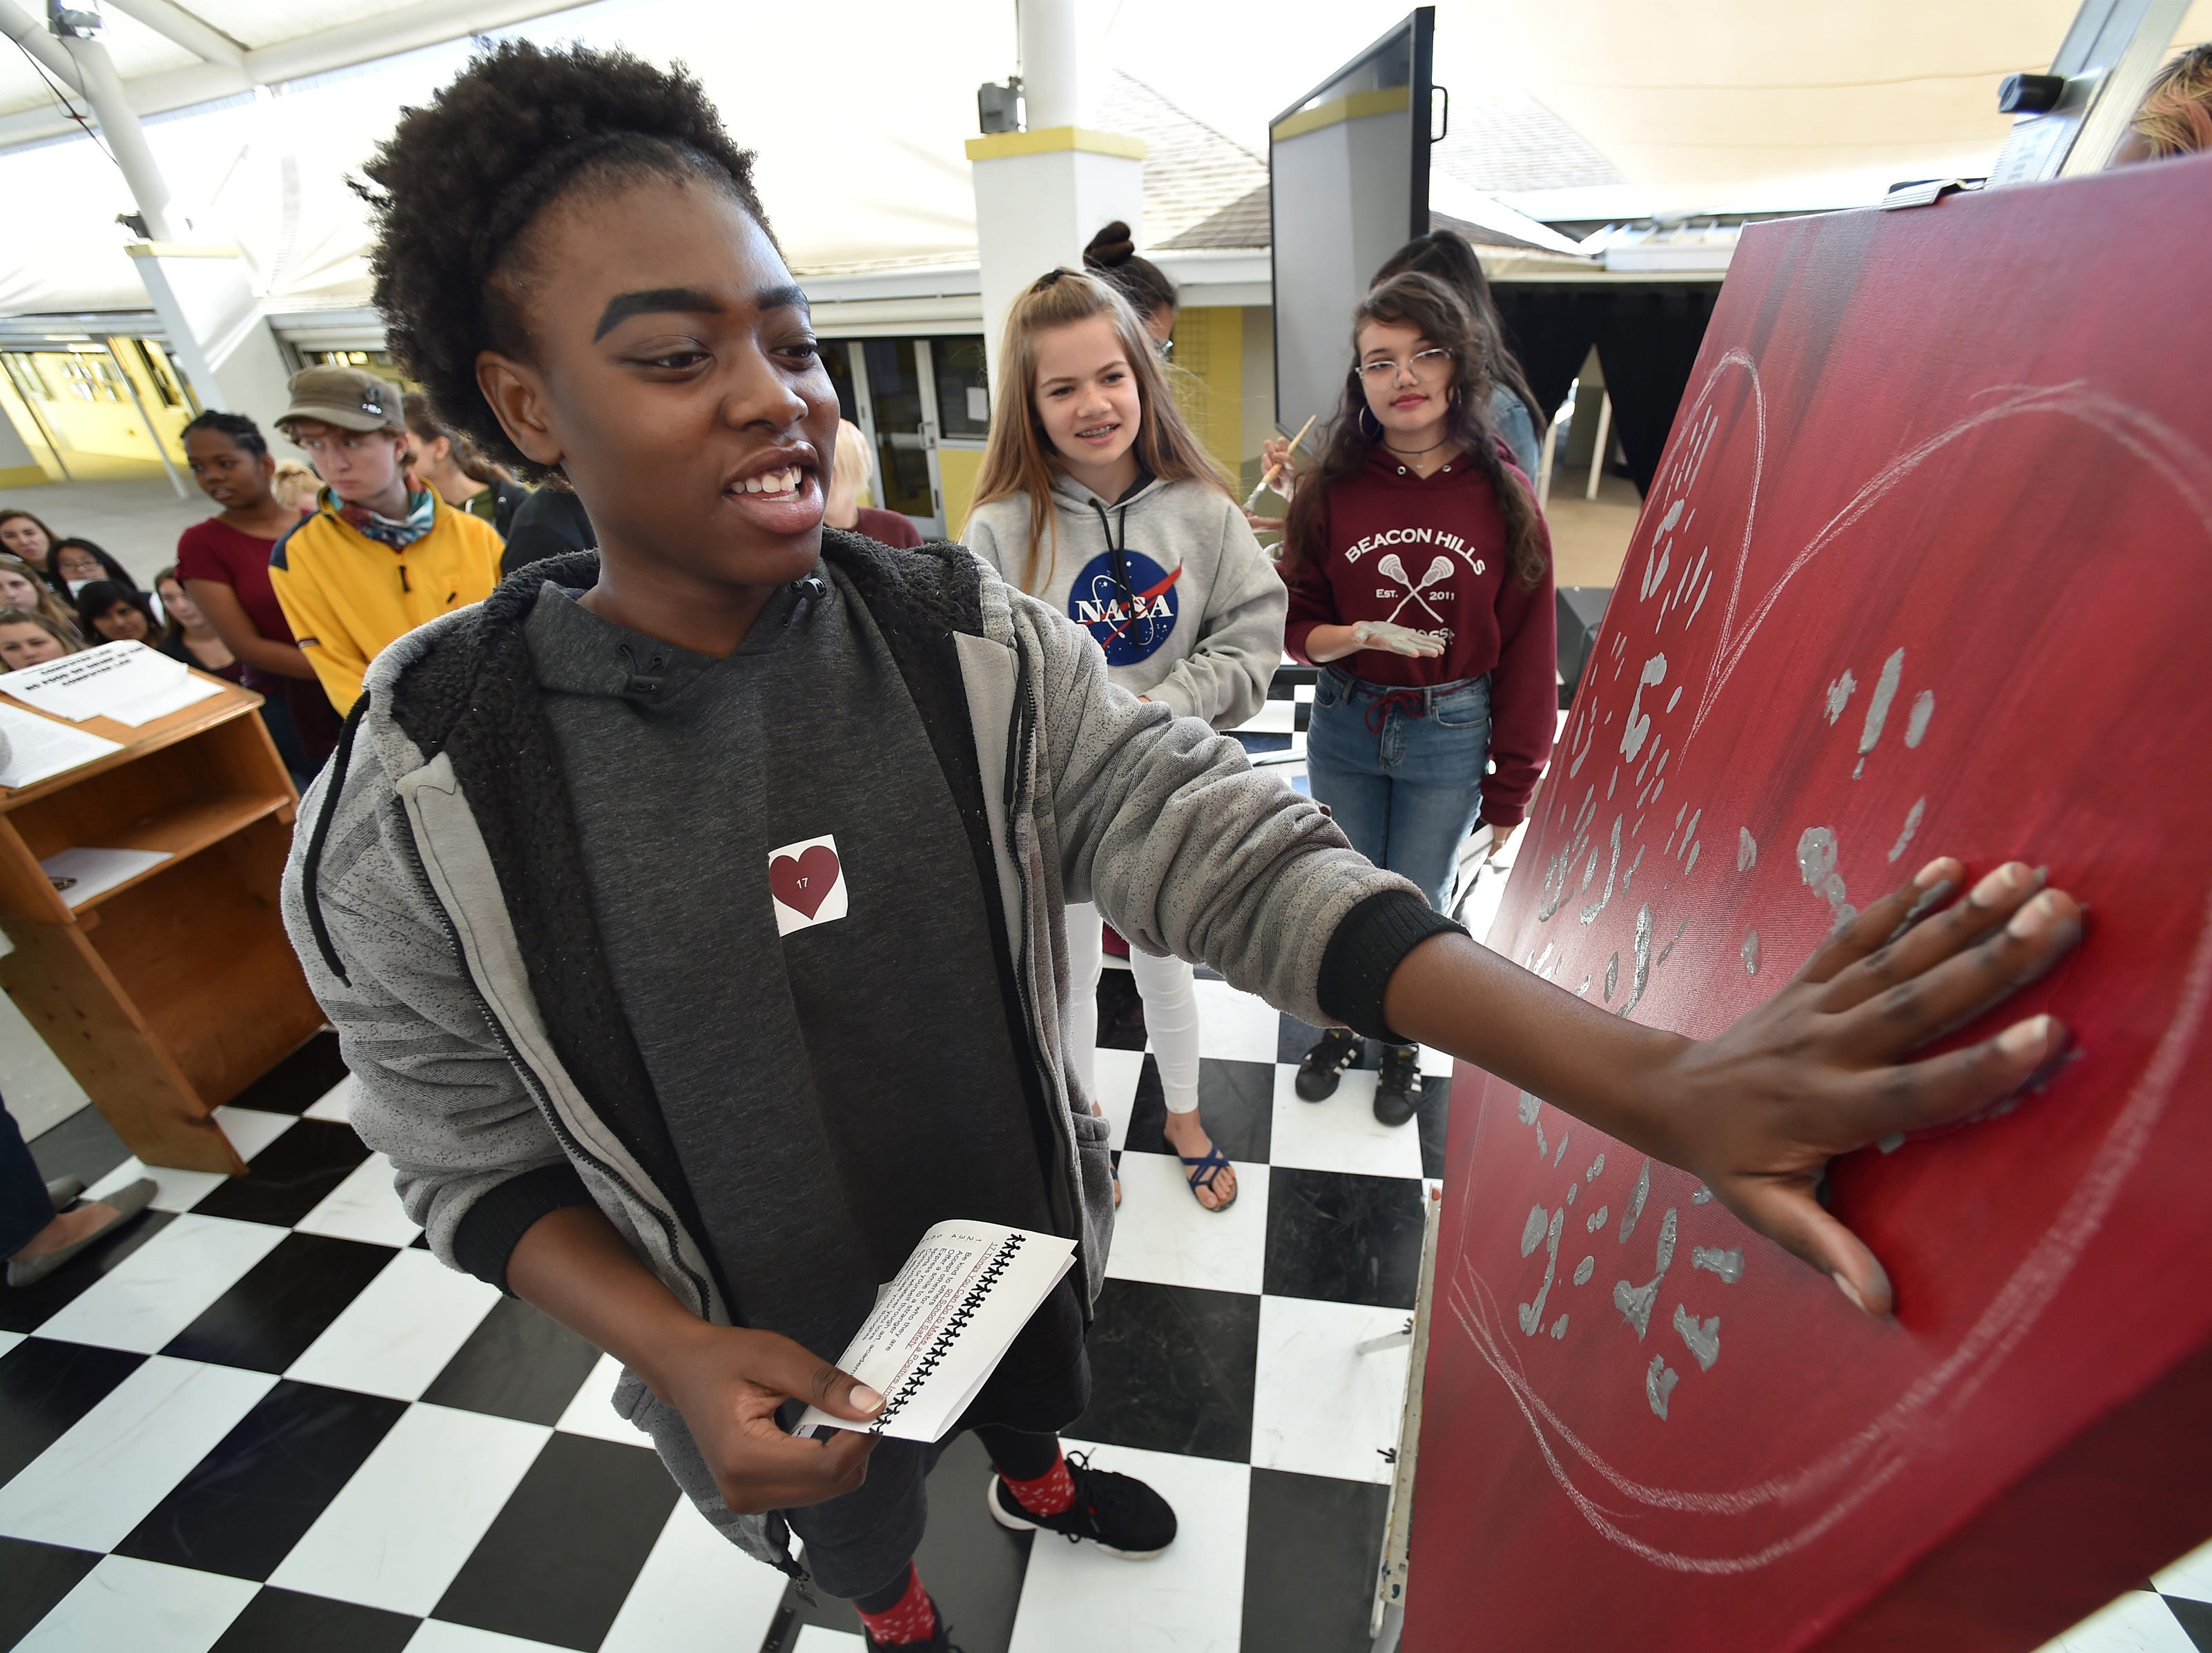 """Sarah Bathelemy, 15, a sophomore at Indian River Charter High School, adds her handprint to a canvas during the school's observance of National Walkout Day, in which the school chose to have a school-wide Walk In to honor the 17 students and teachers killed in the Parkland shooting. More than 650 students and faculty participated in the ceremony under the dome of the school's courtyard on Wednesday, March 14, 2018 in Vero Beach. """"Amazing, I feel delighted and lifted up,"""" Sarah said after adding her handprint to the canvas, to later be presented to Stoneman Douglas High School in Parkland."""